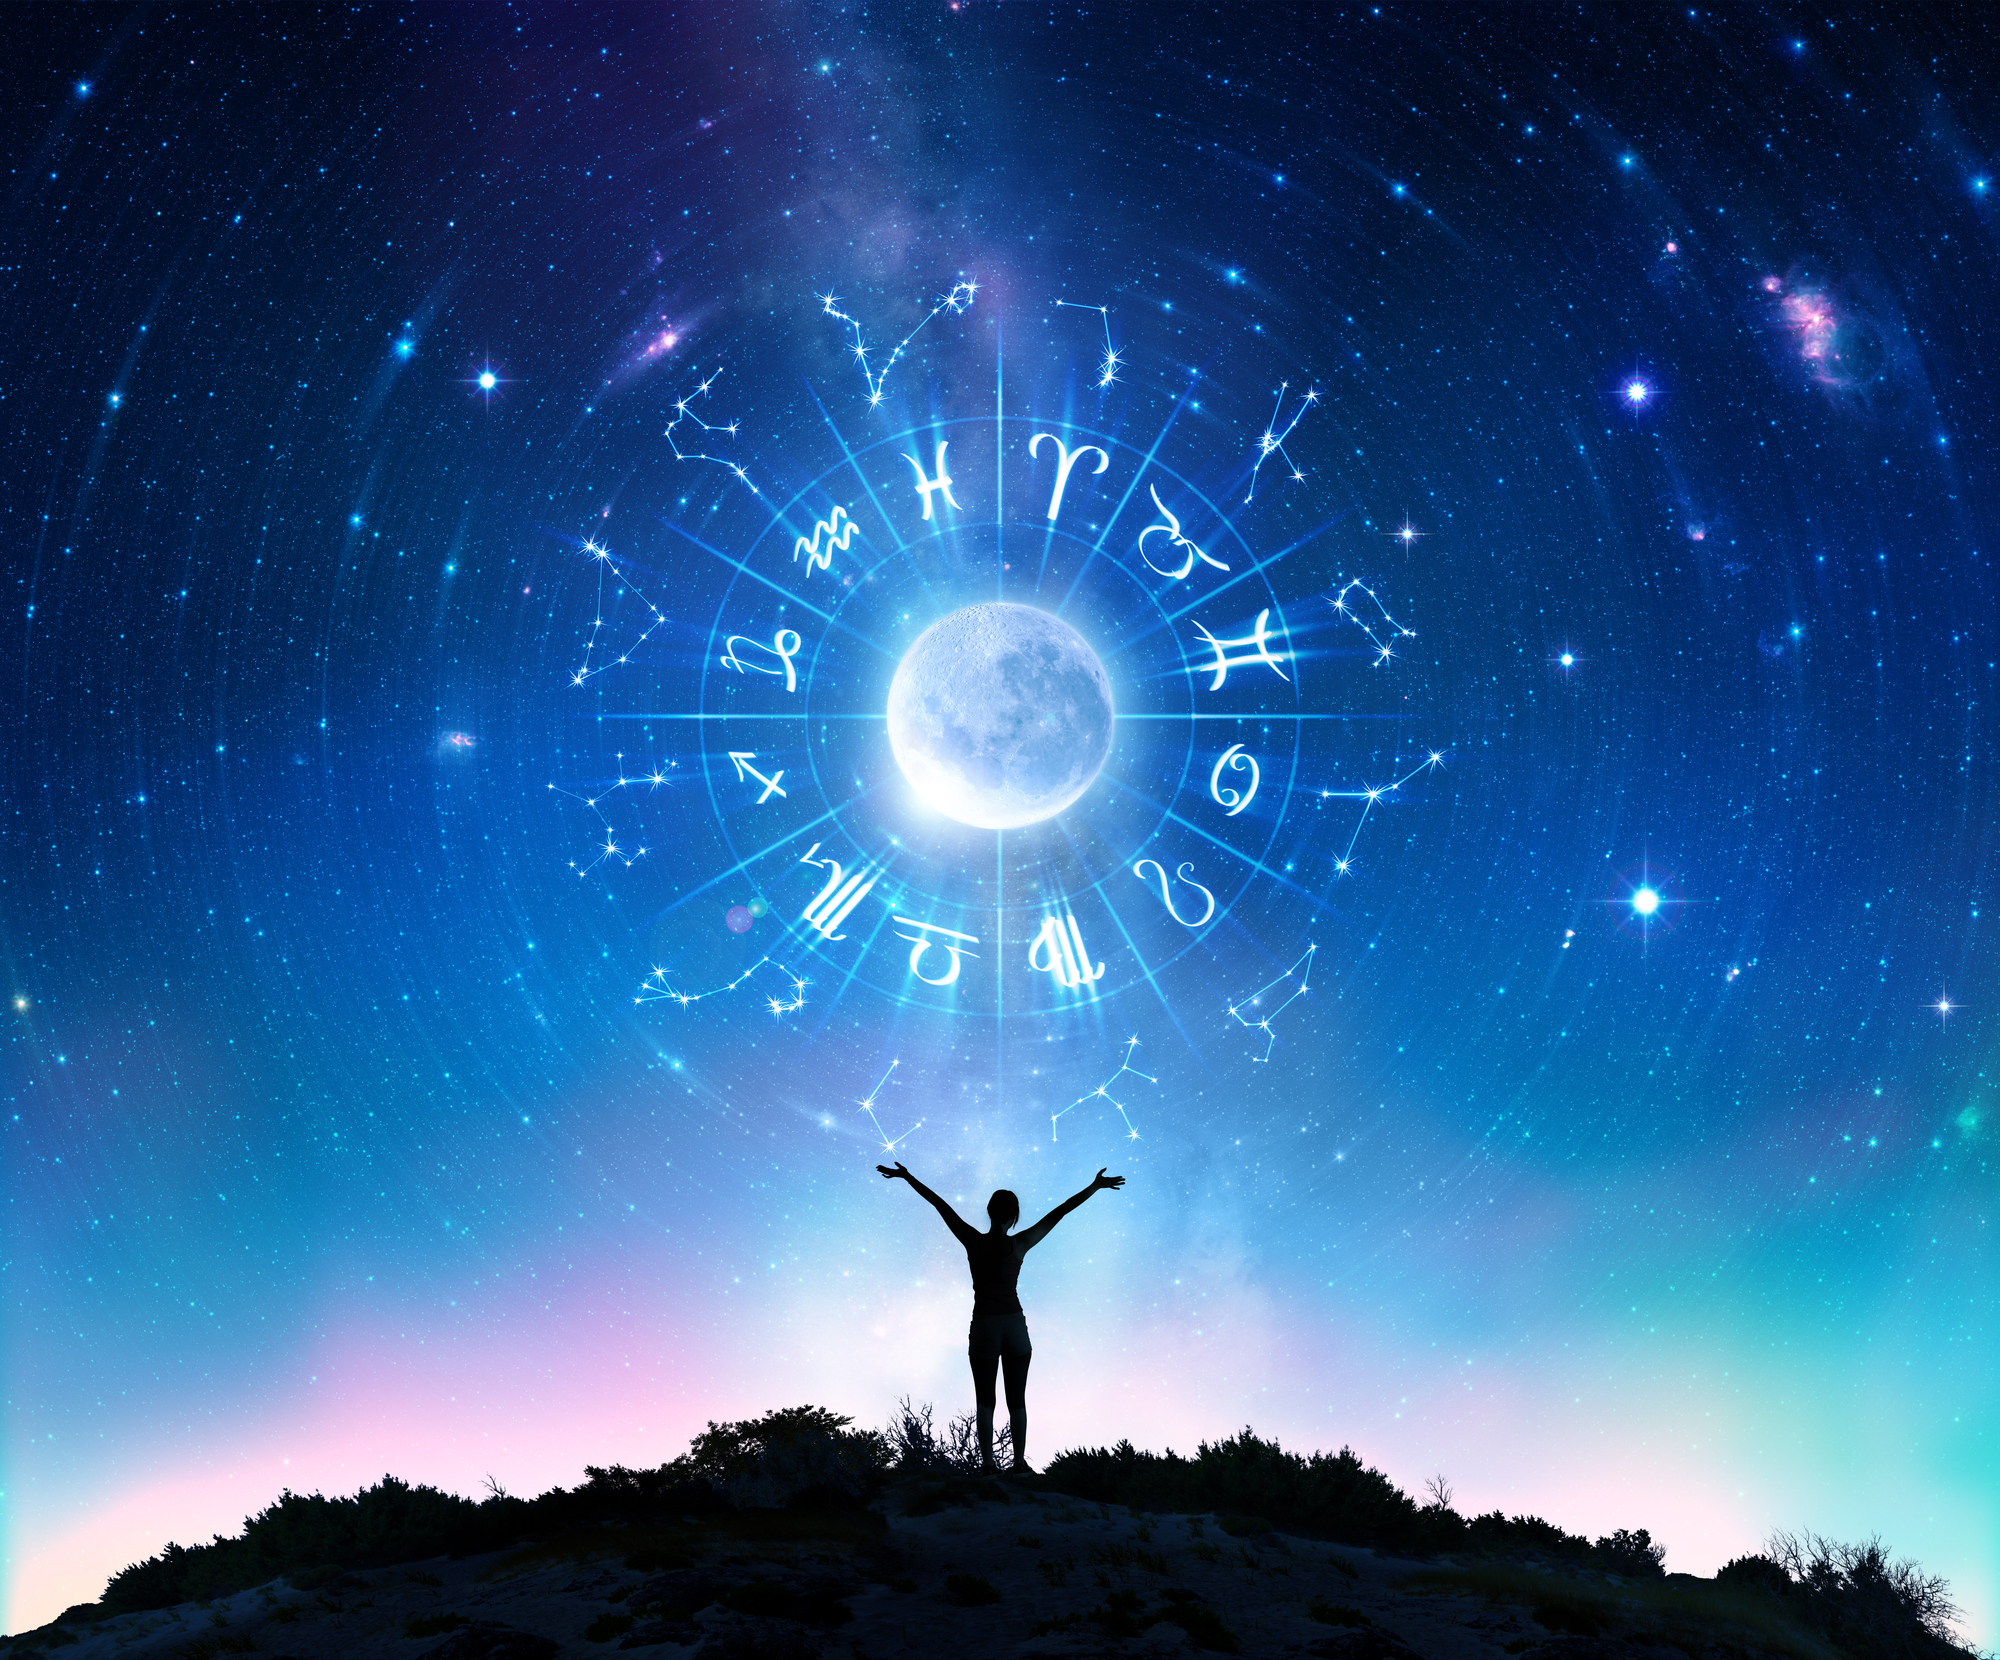 Is astrology divination?